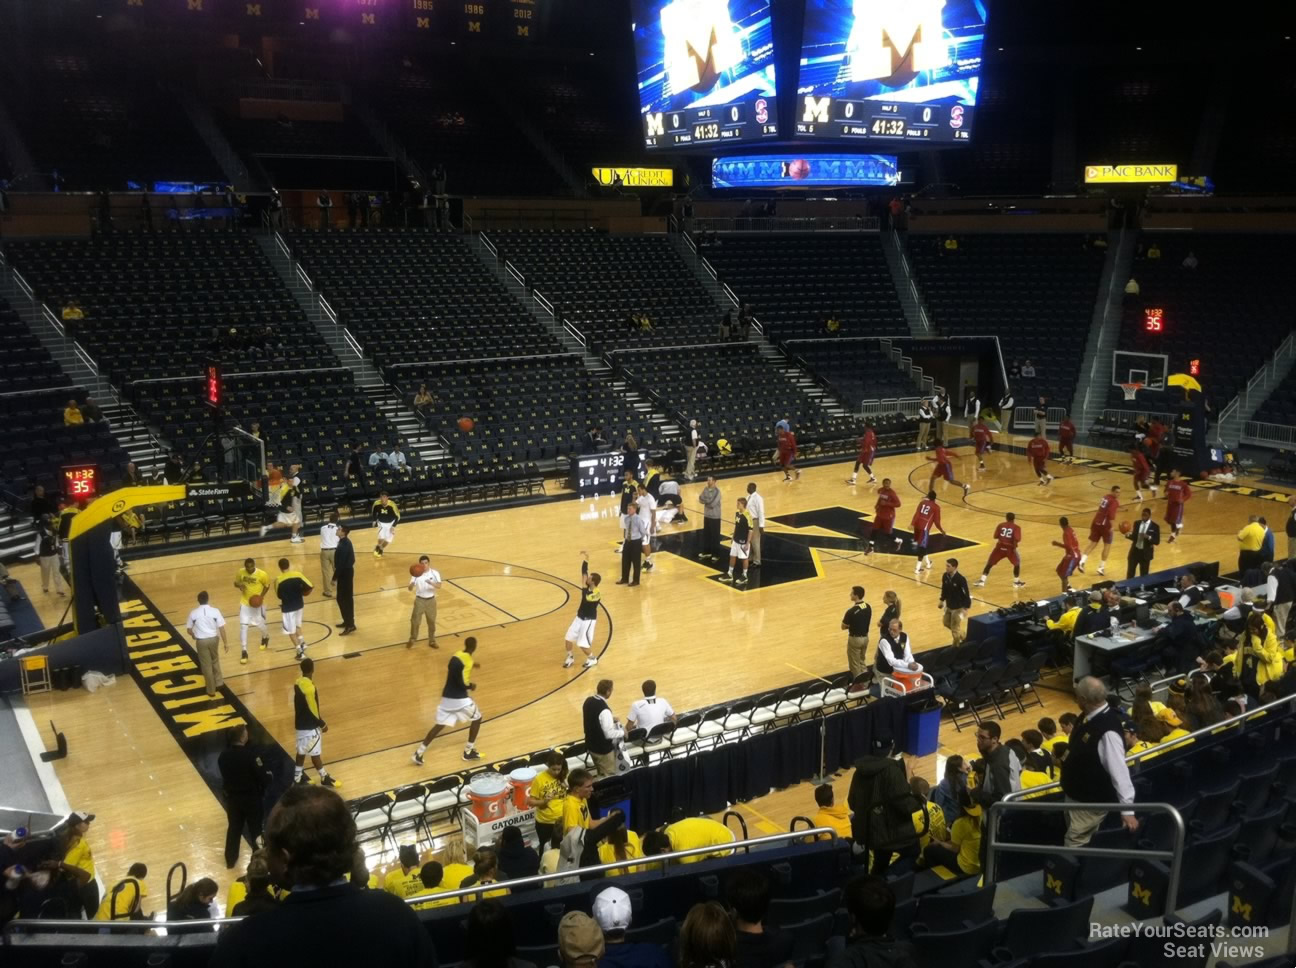 Seat View for Crisler Center Section 126, Row 16